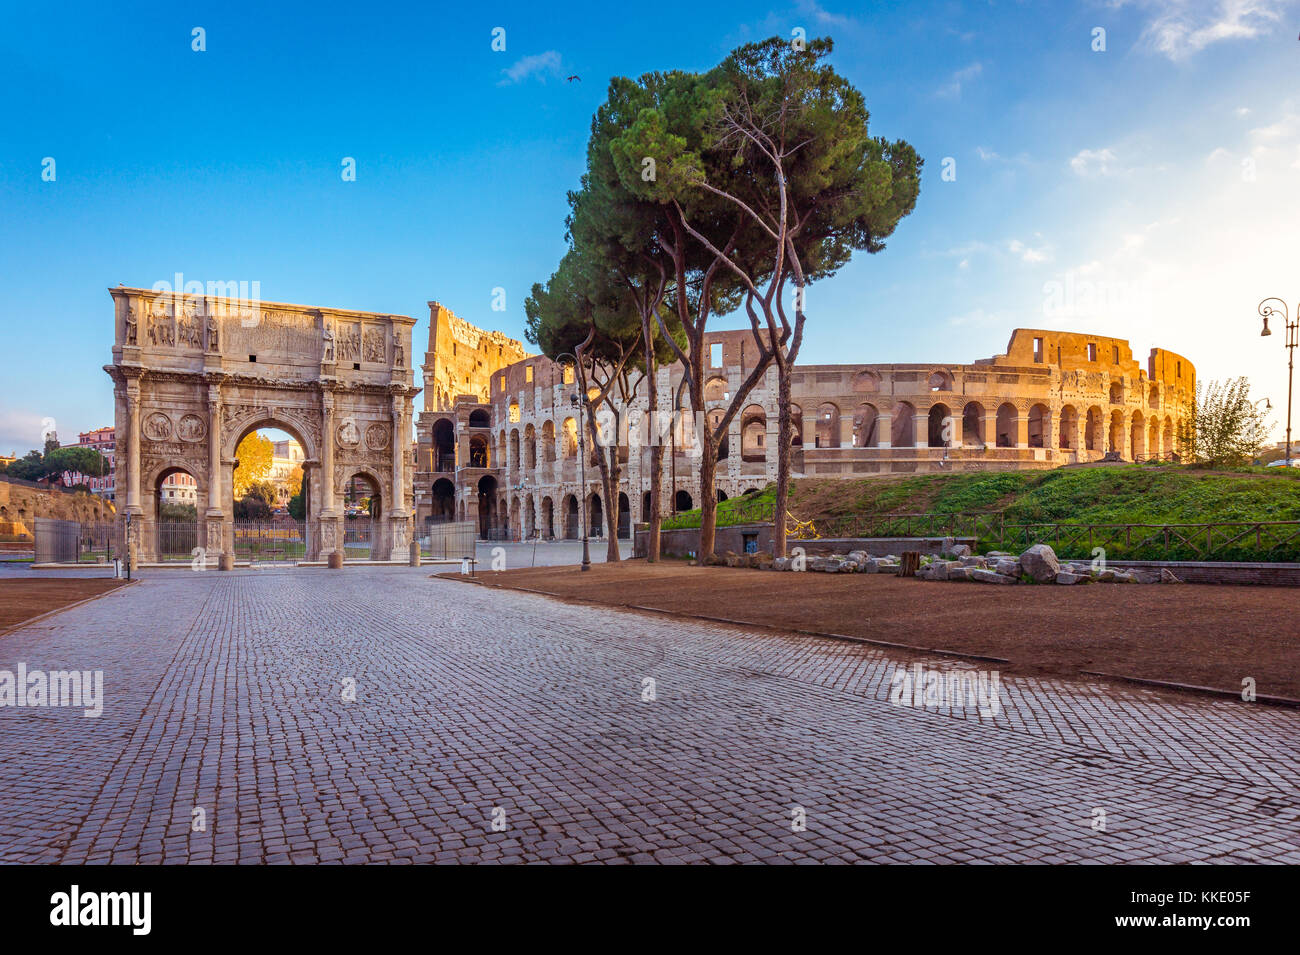 Beautiful view over Colosseum and Arch of Constantine in the morning in Rome, Italy, Europe - Stock Image